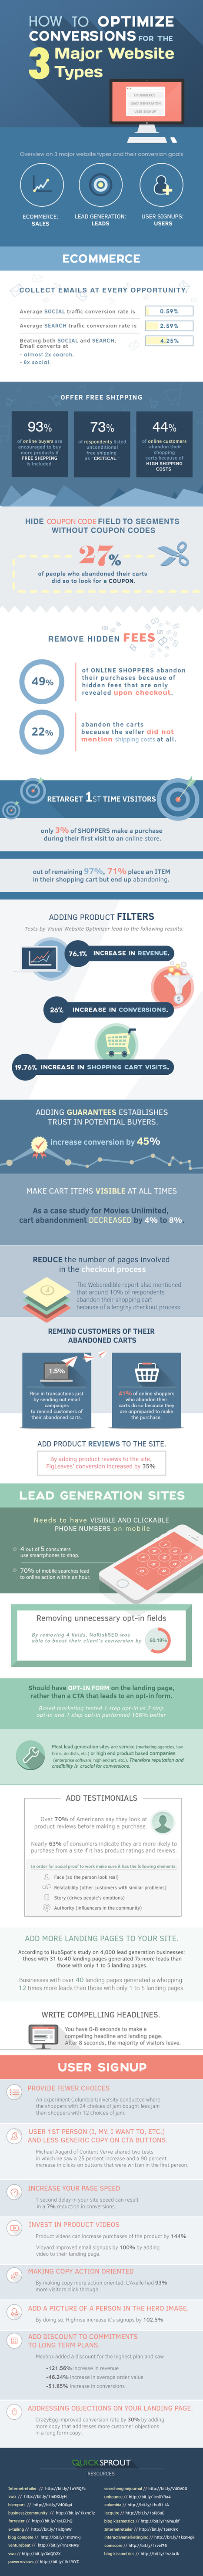 How to Optimize Conversions for the 3 Major Website Types | infografias - infographics | Scoop.it